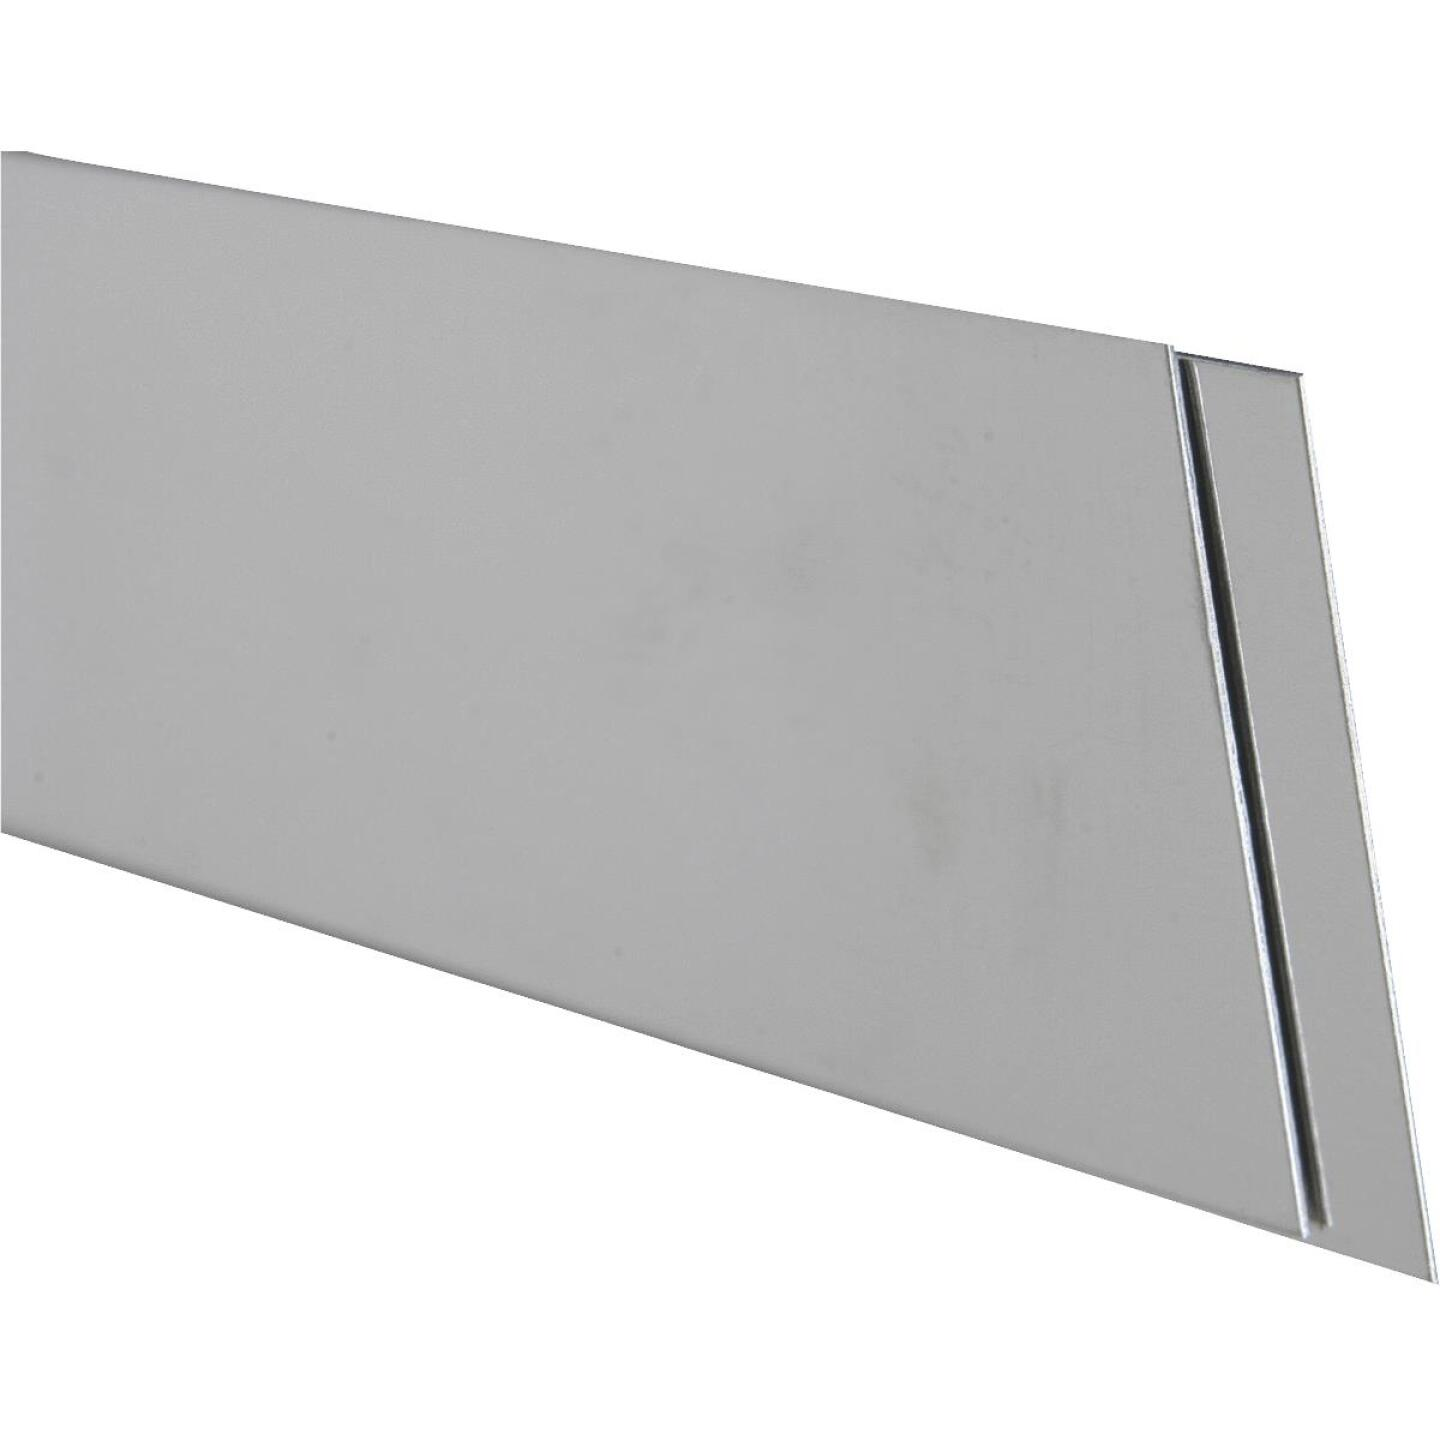 K&S Stainless Steel 3/4 In. x 12 In. Strip Stock Image 1